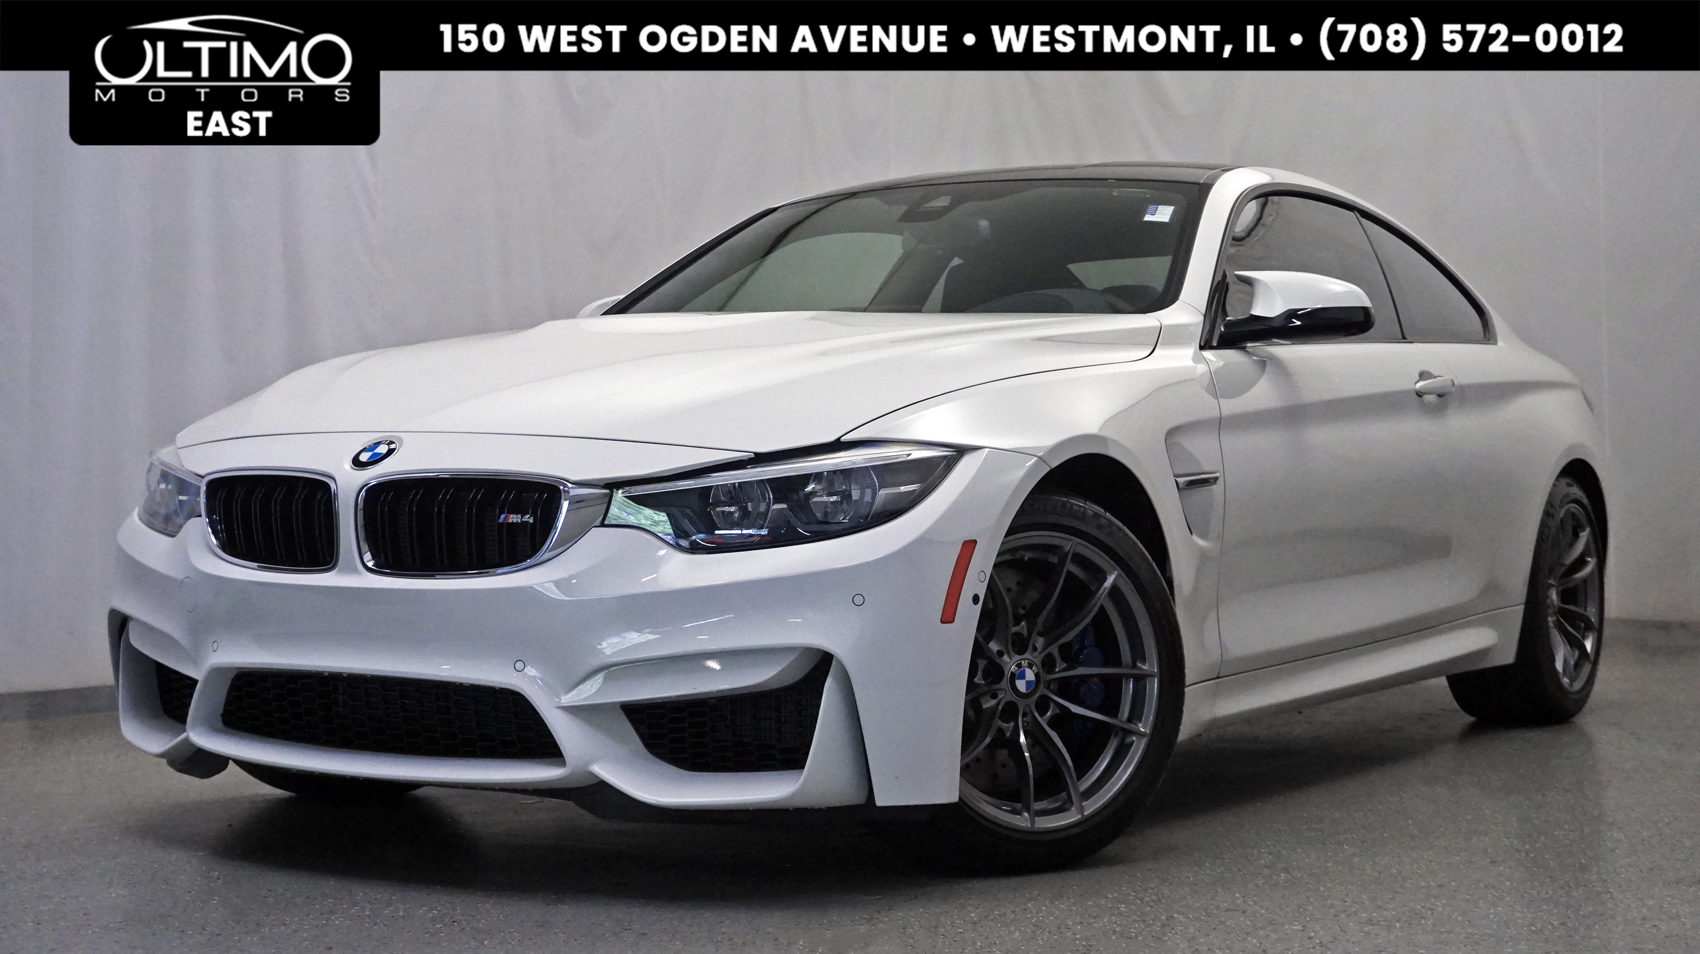 Pre-Owned 2018 BMW M4 6-Speed Manual, Executive Pkg, Heads Up, Heated Steering, Blind Spot, Harman Kardon Sound